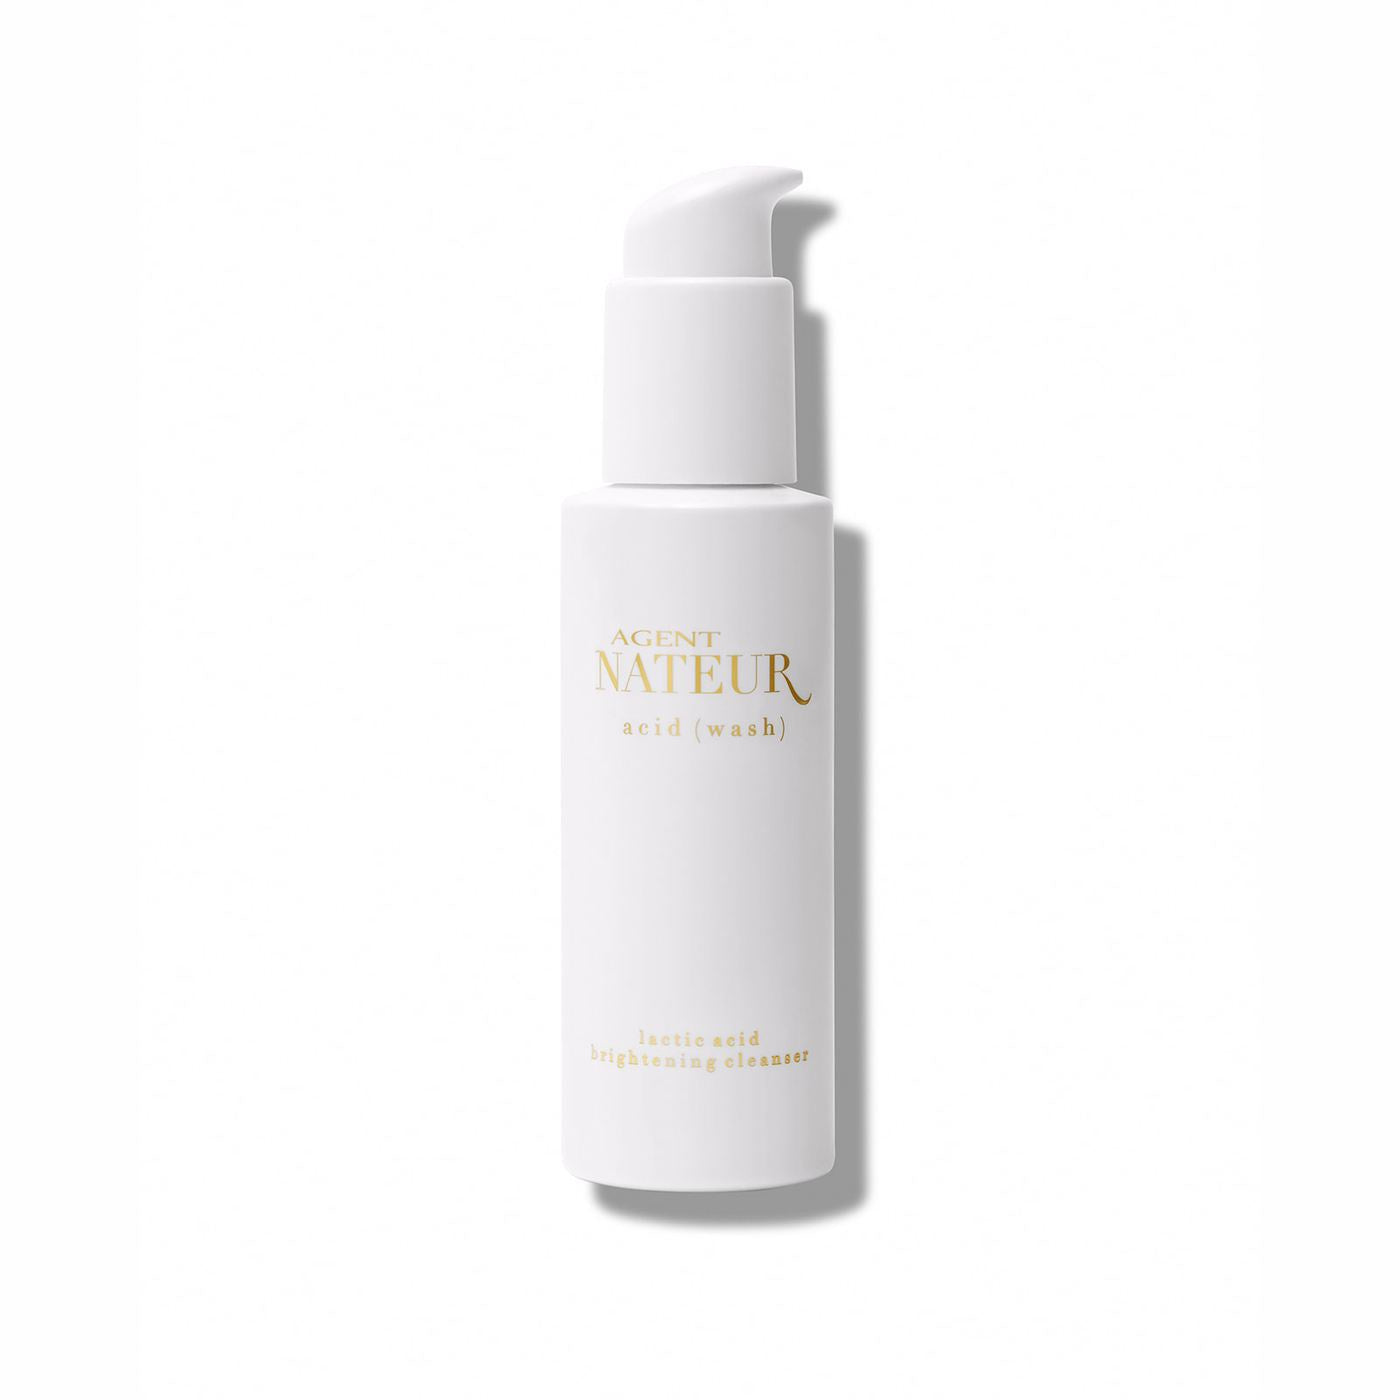 agent nateur | a c i d ( w a s h ) -  lactic acid brightening cleanser[product_type ]agent nateur - Kiss and Makeup